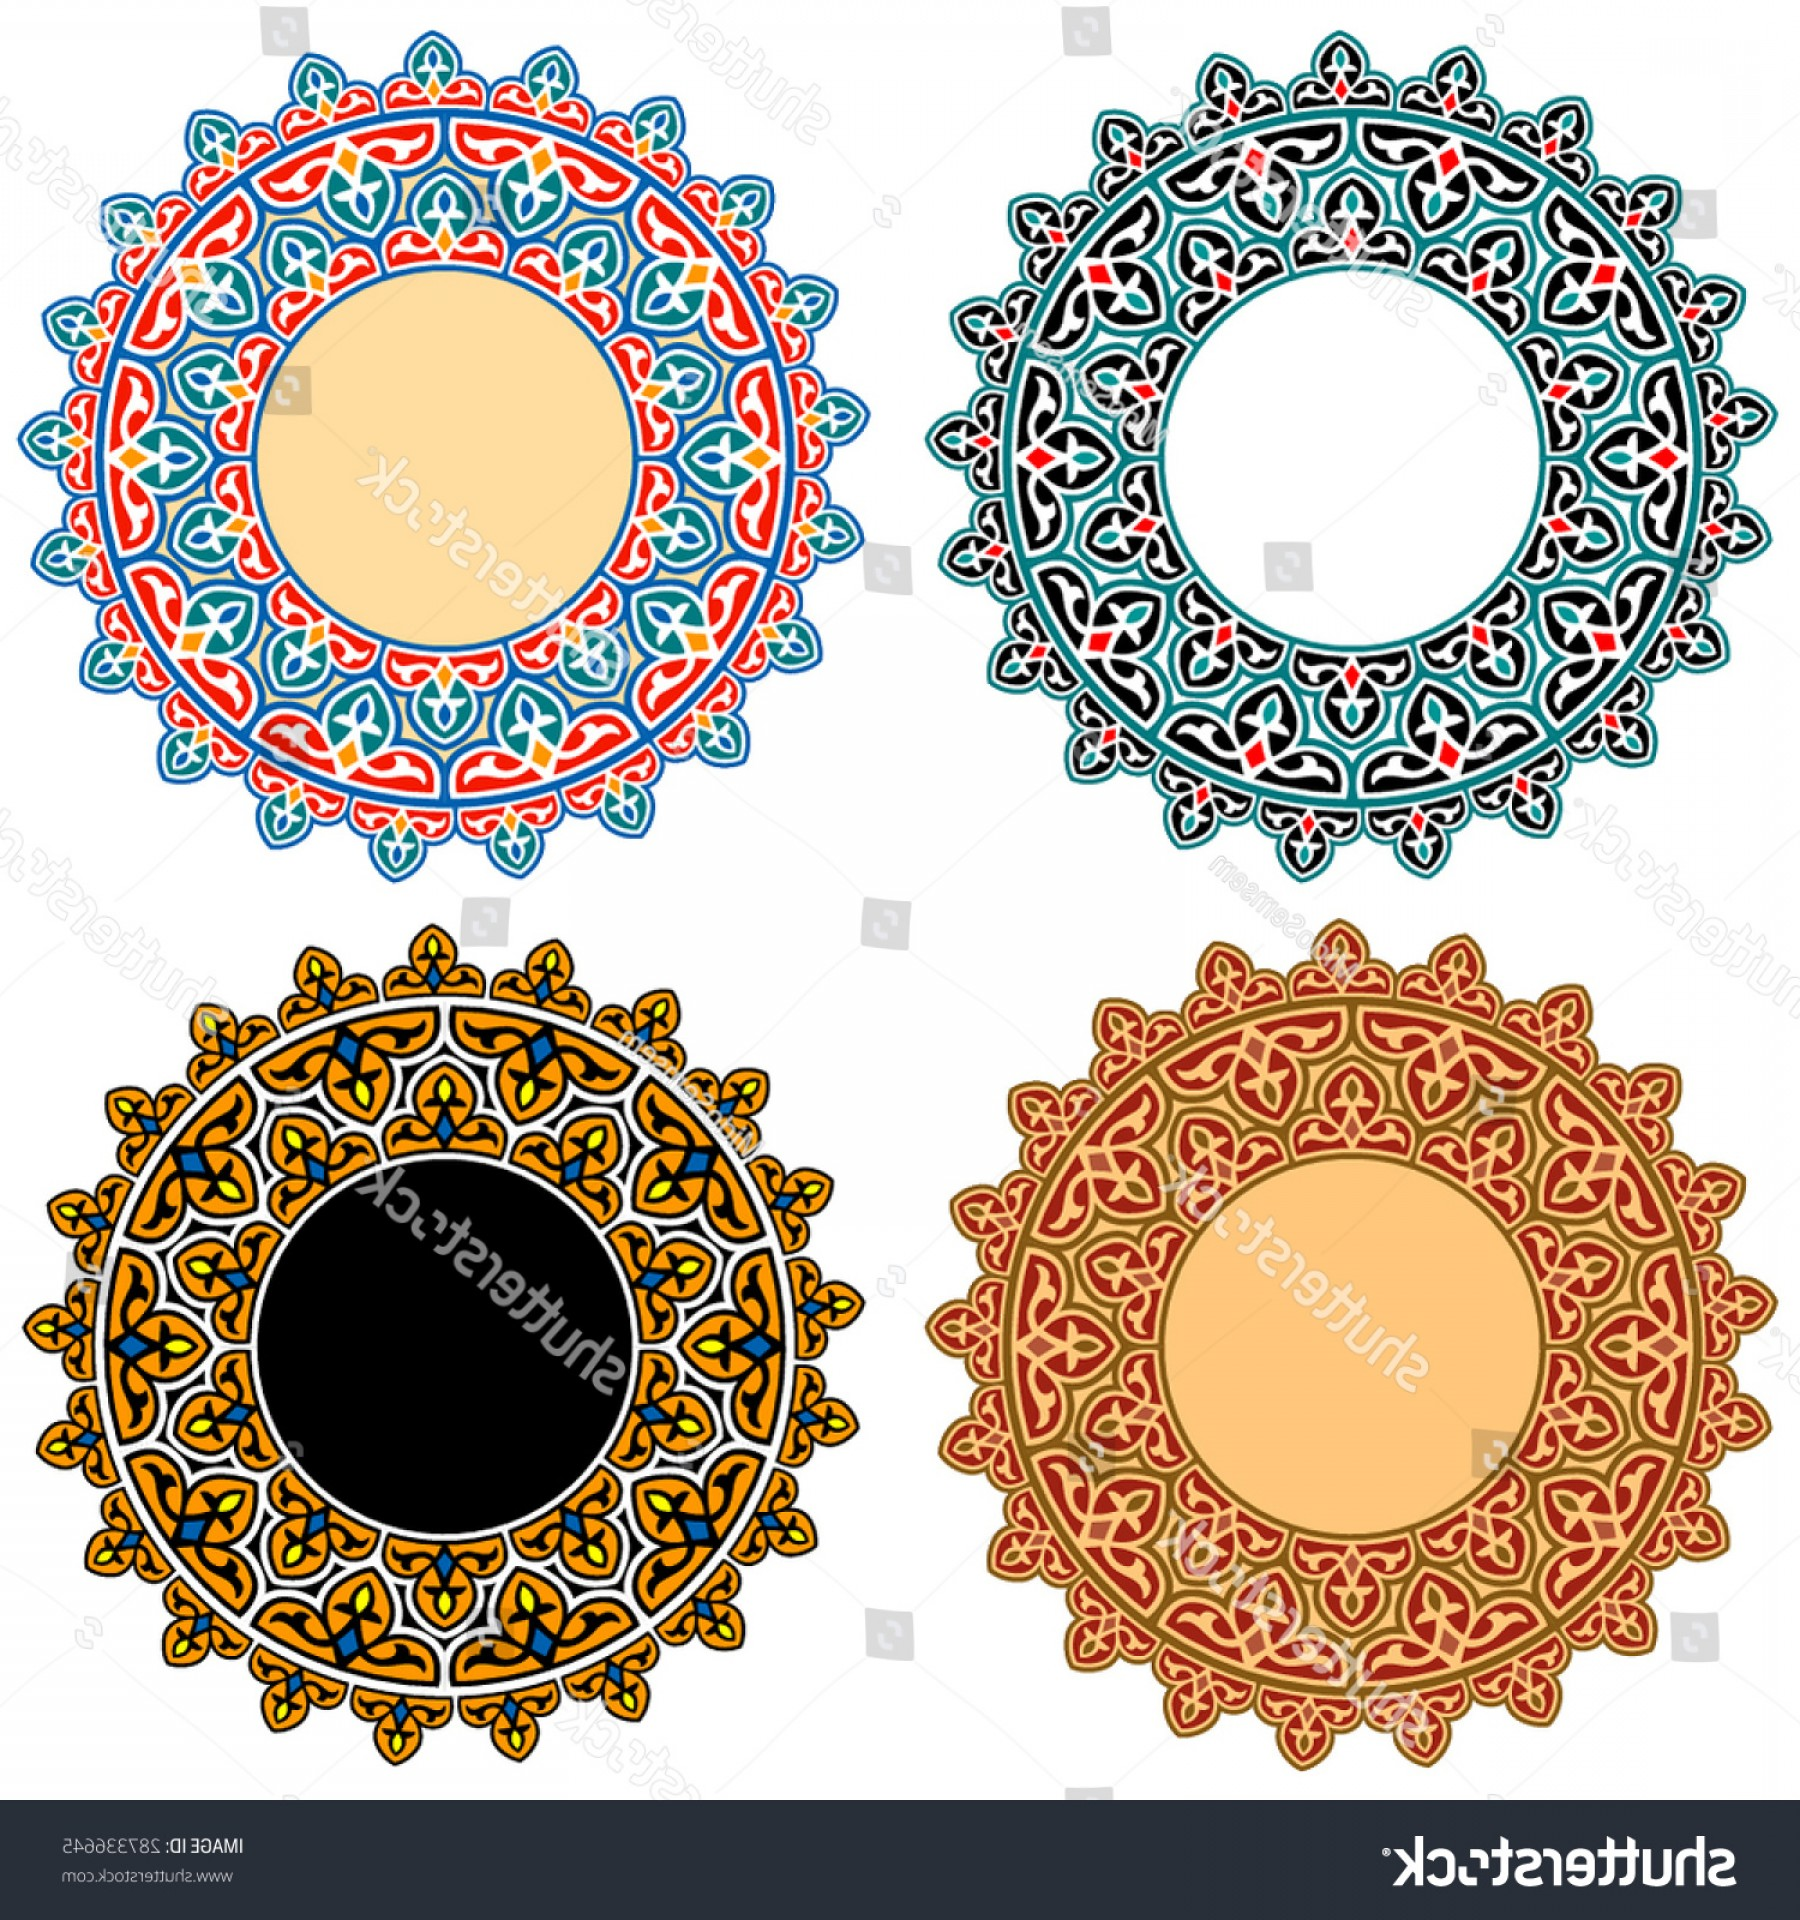 Open Source Vector Graphic Flower: Vector Islamic Floral Art Ornaments Open